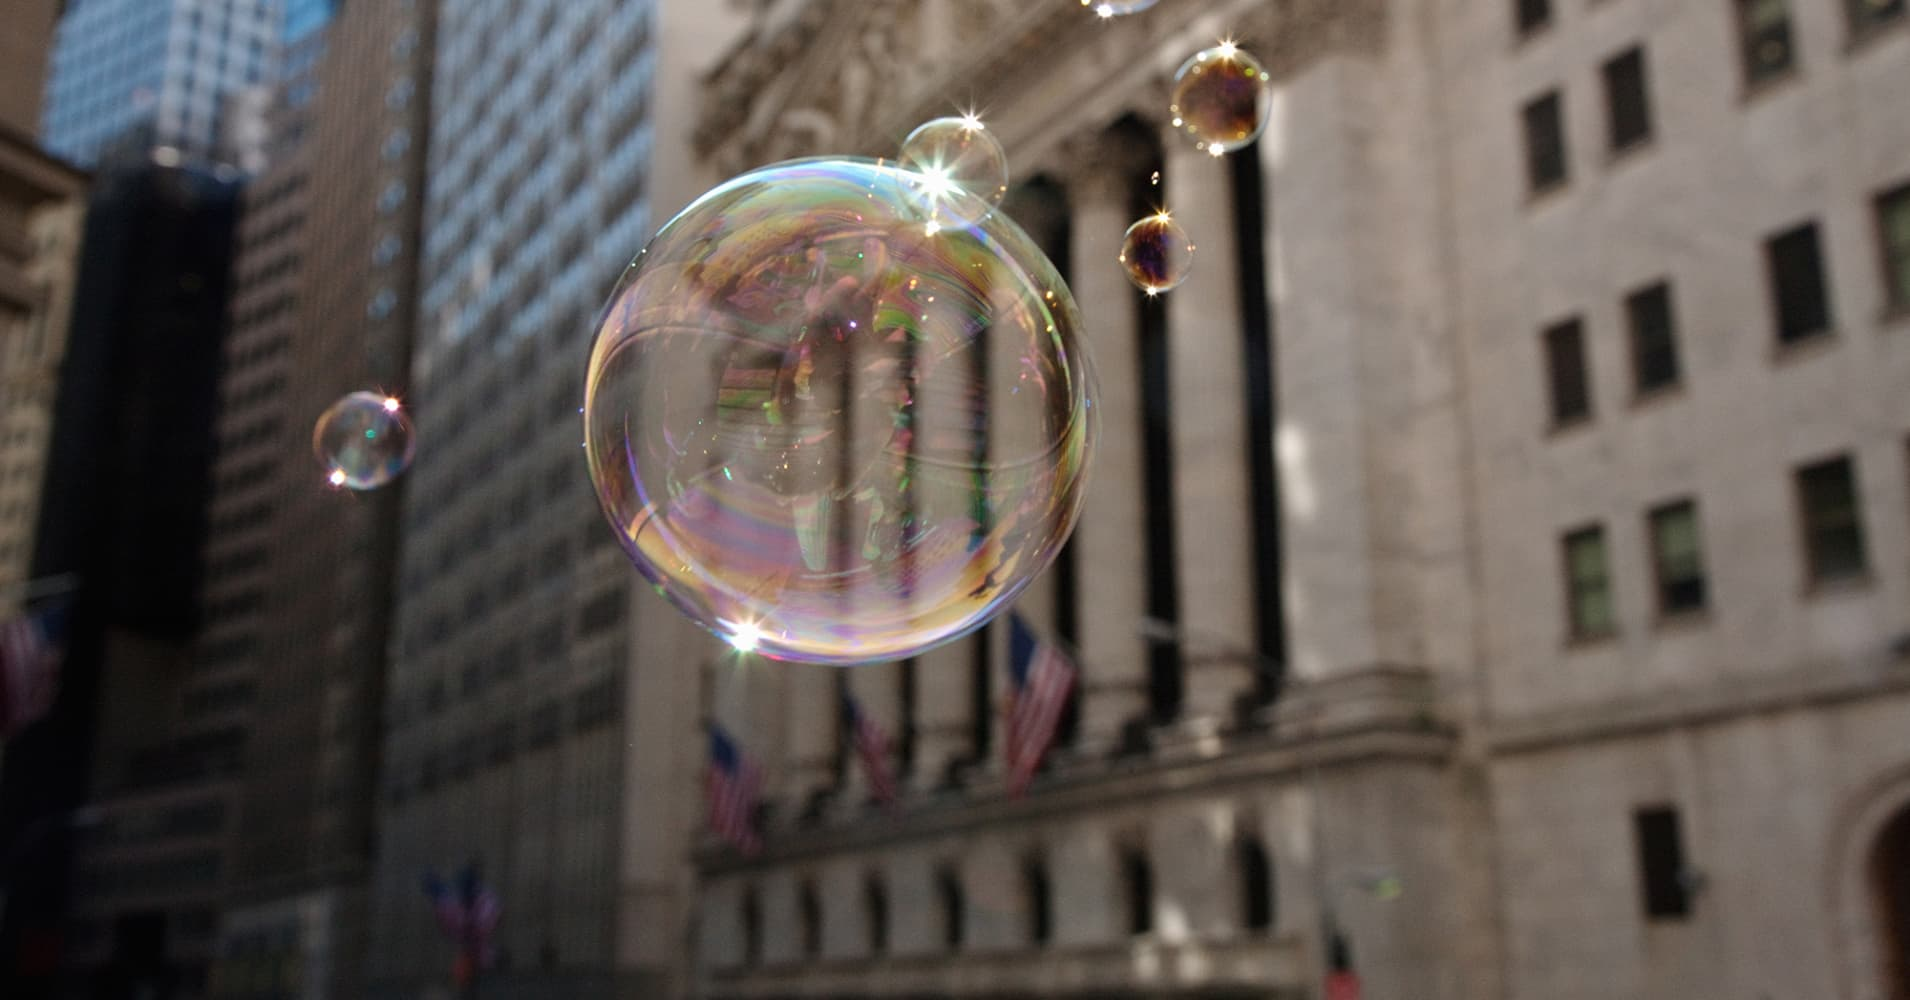 'Speculative frenzy': Tech stocks haven't done this since the dotcom bubble